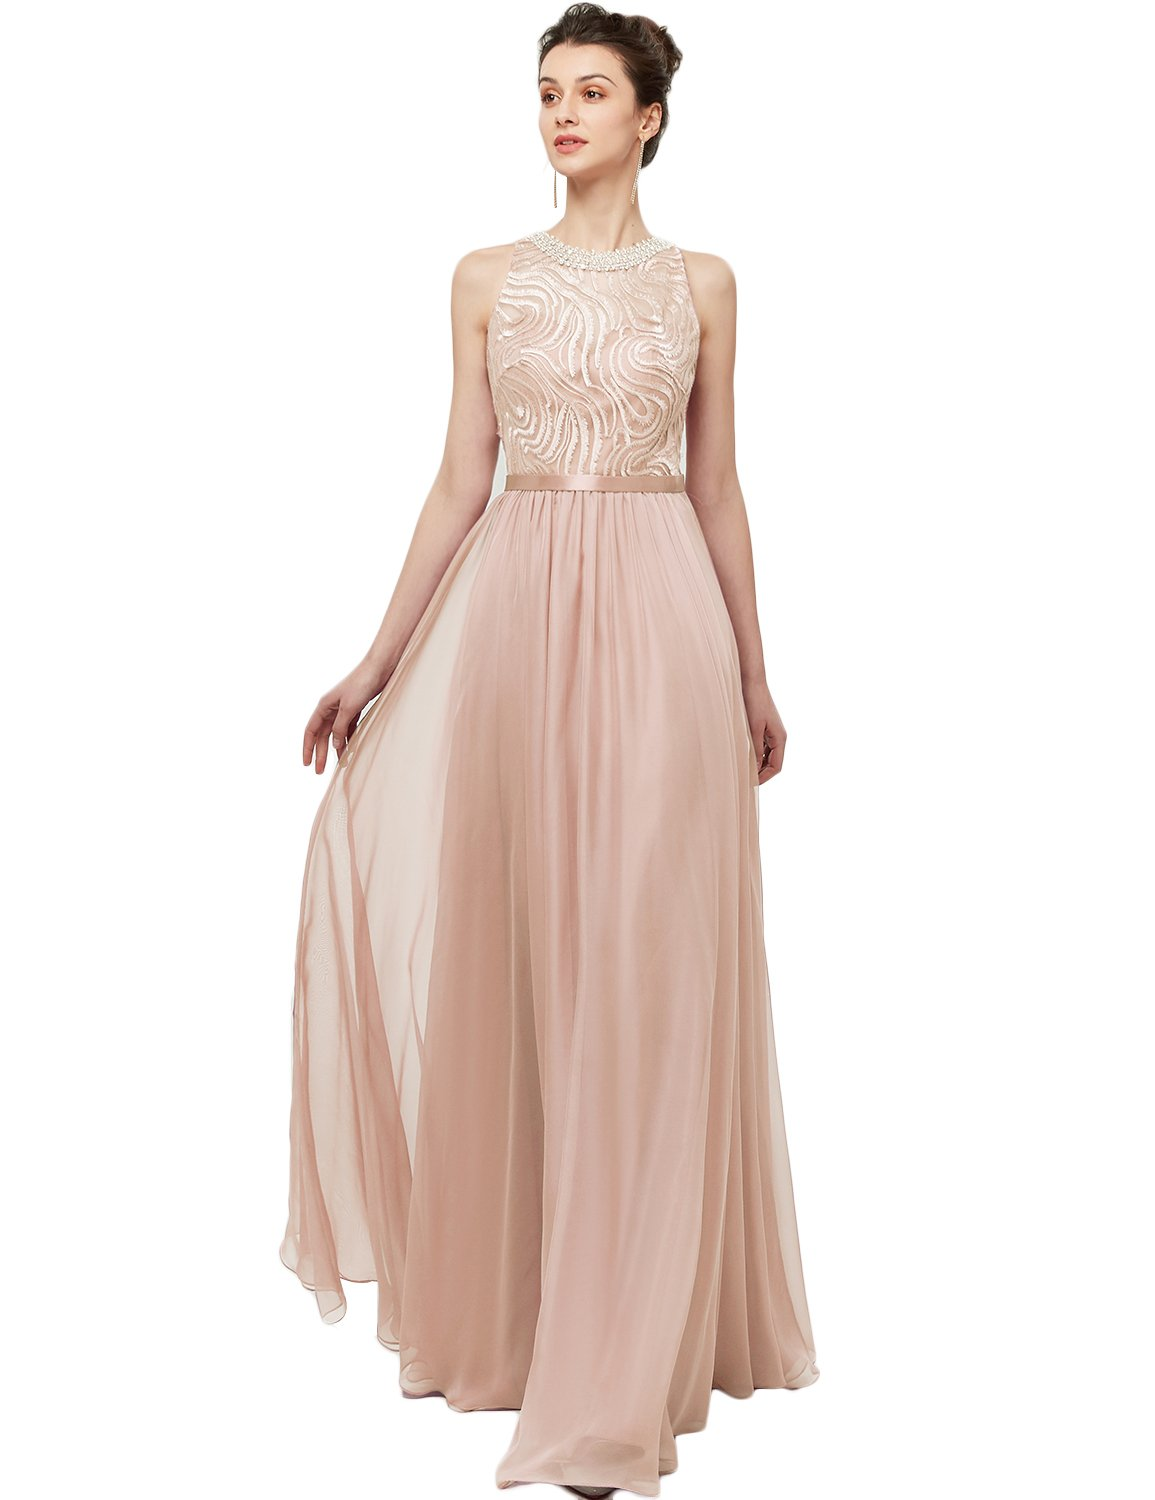 Long Bridesmaid Dress 2018 Sleeveless A Line Chiffon Maxi Evening ...